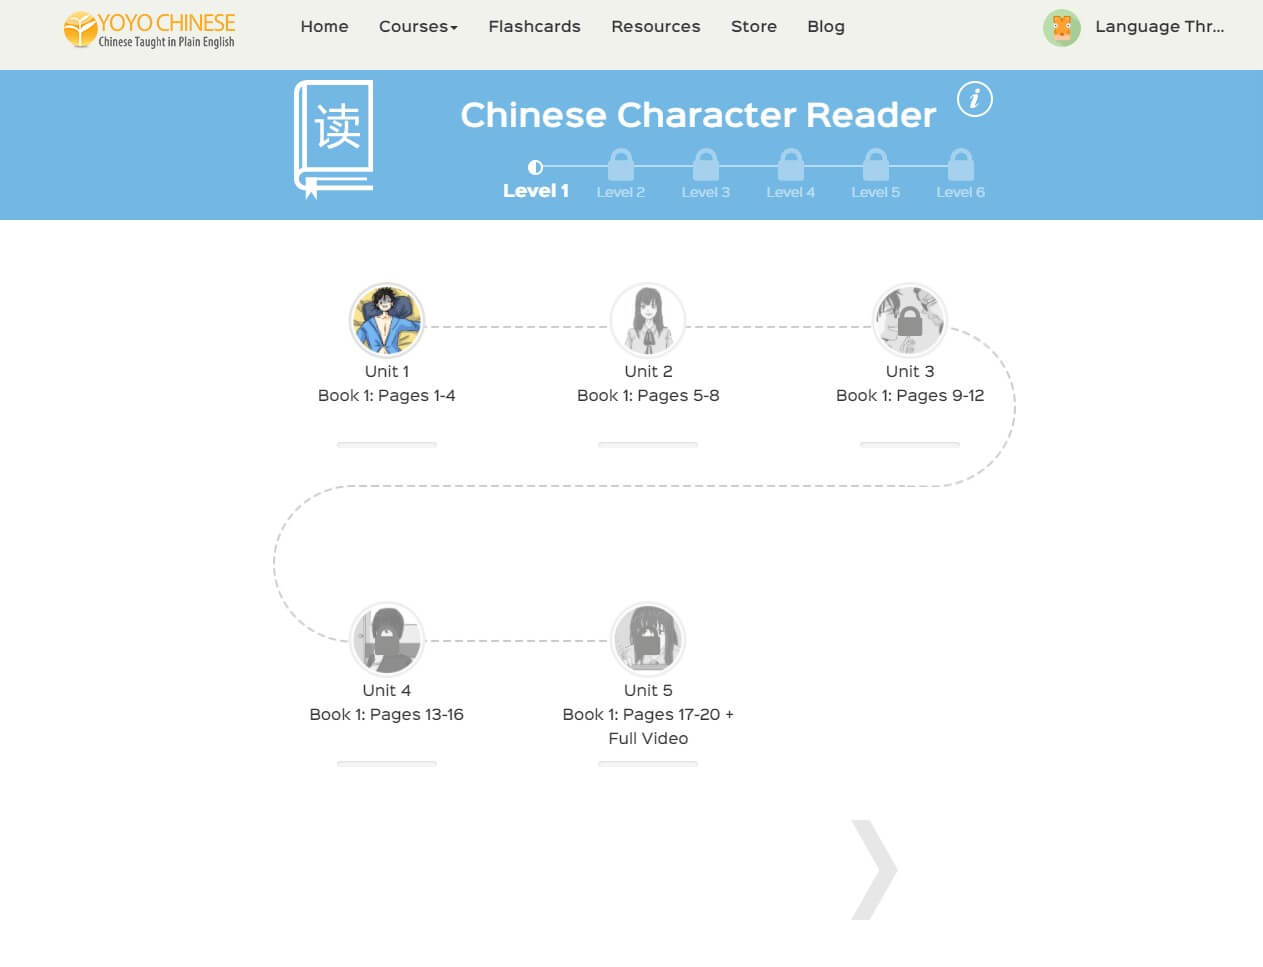 Chinese Character Reader - Language Throne